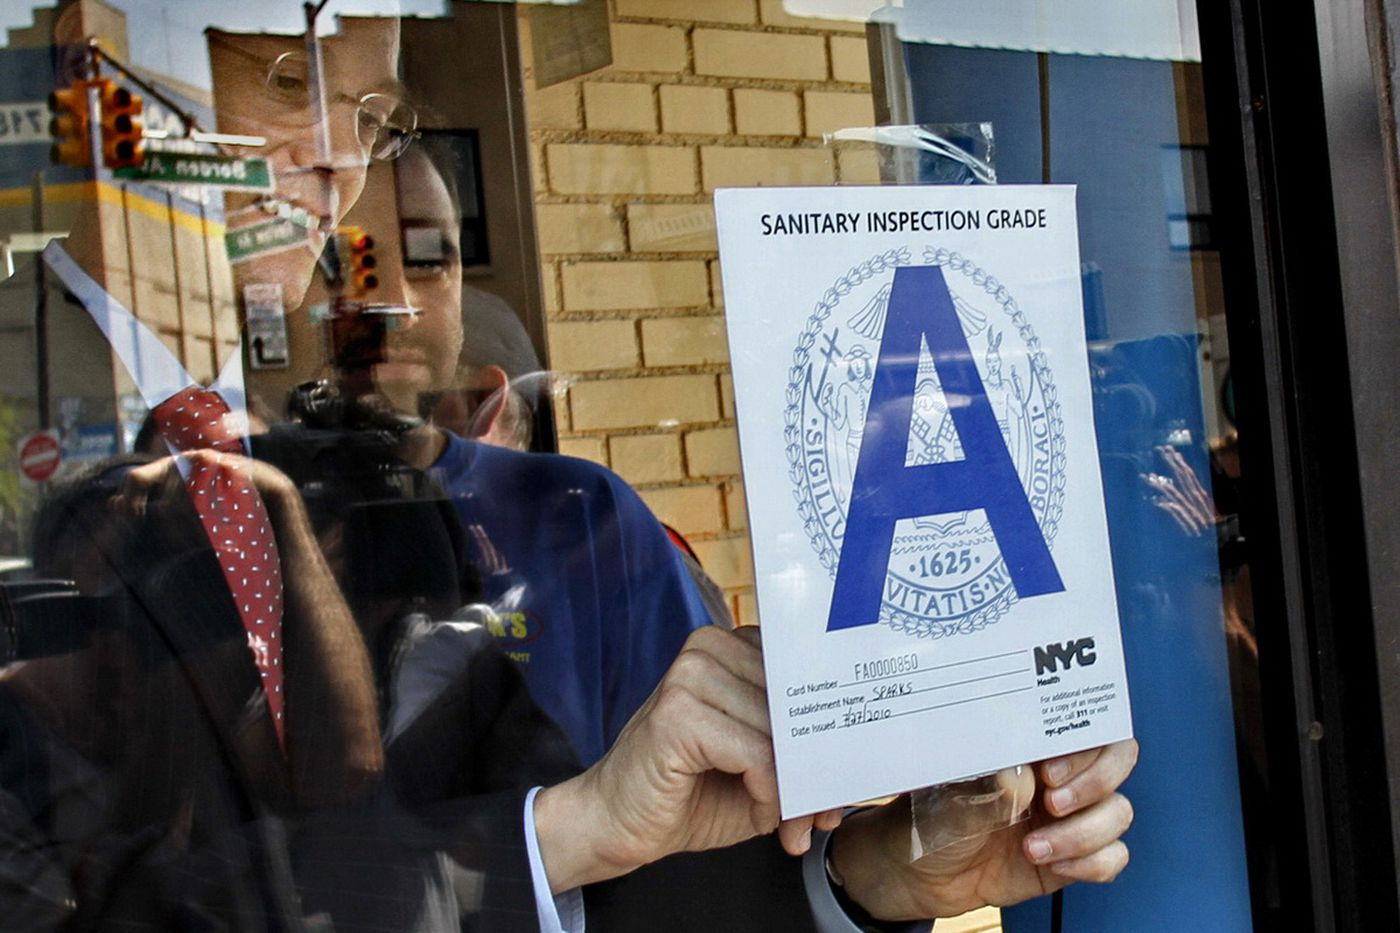 Philly gets silver 'medal' for health policy. Could restaurant grades get it to gold?